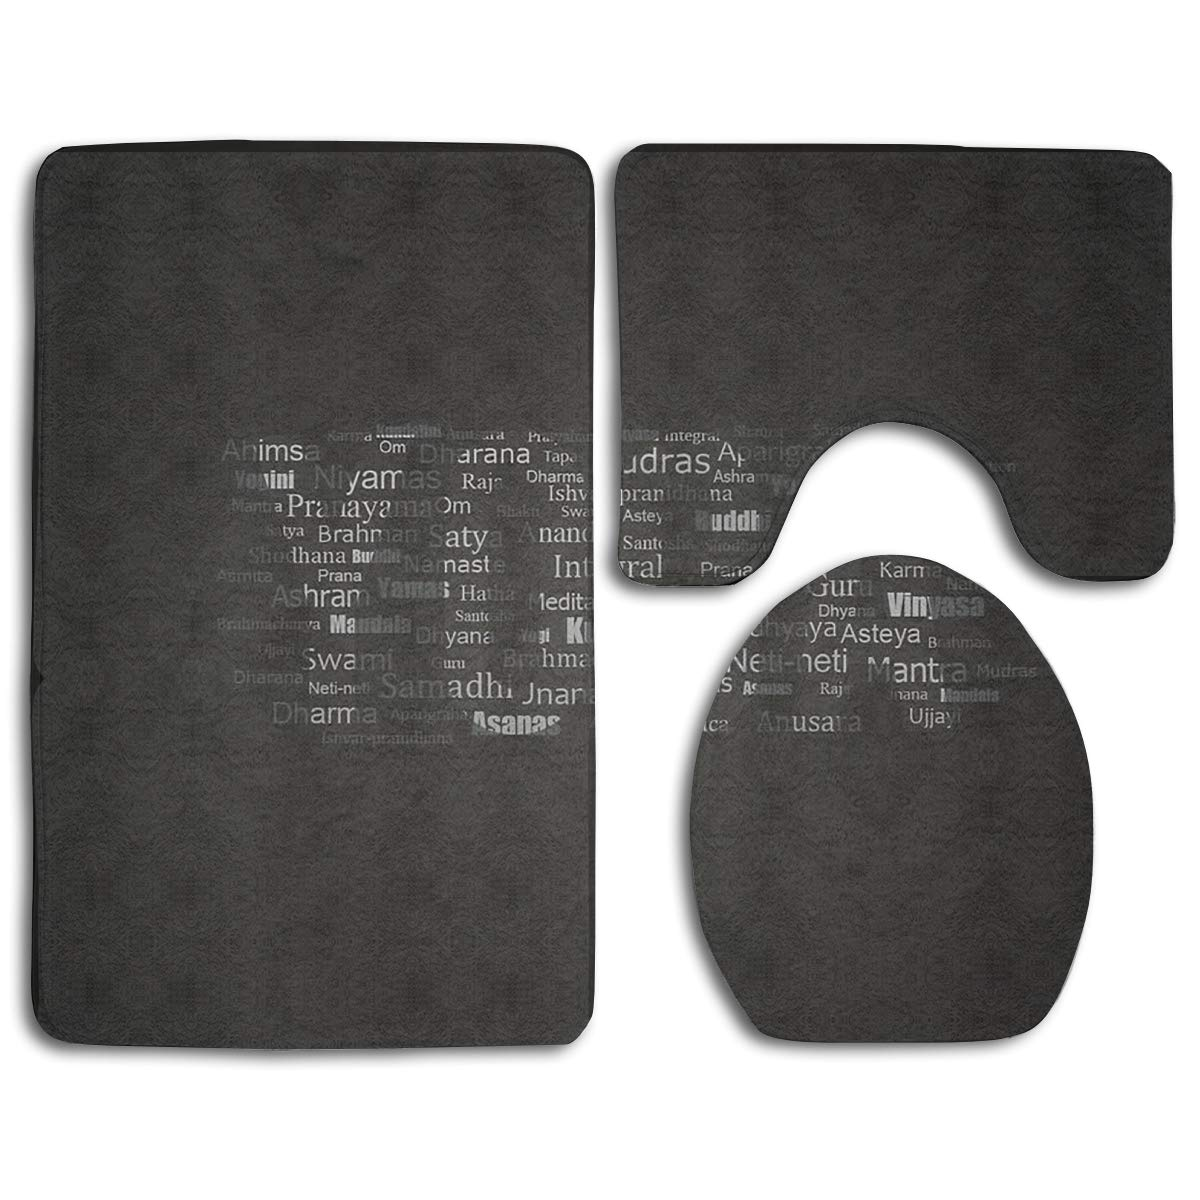 Amazon.com: Yoga Sign Bathroom Rug Sets 3 Piece Non-Slip ...